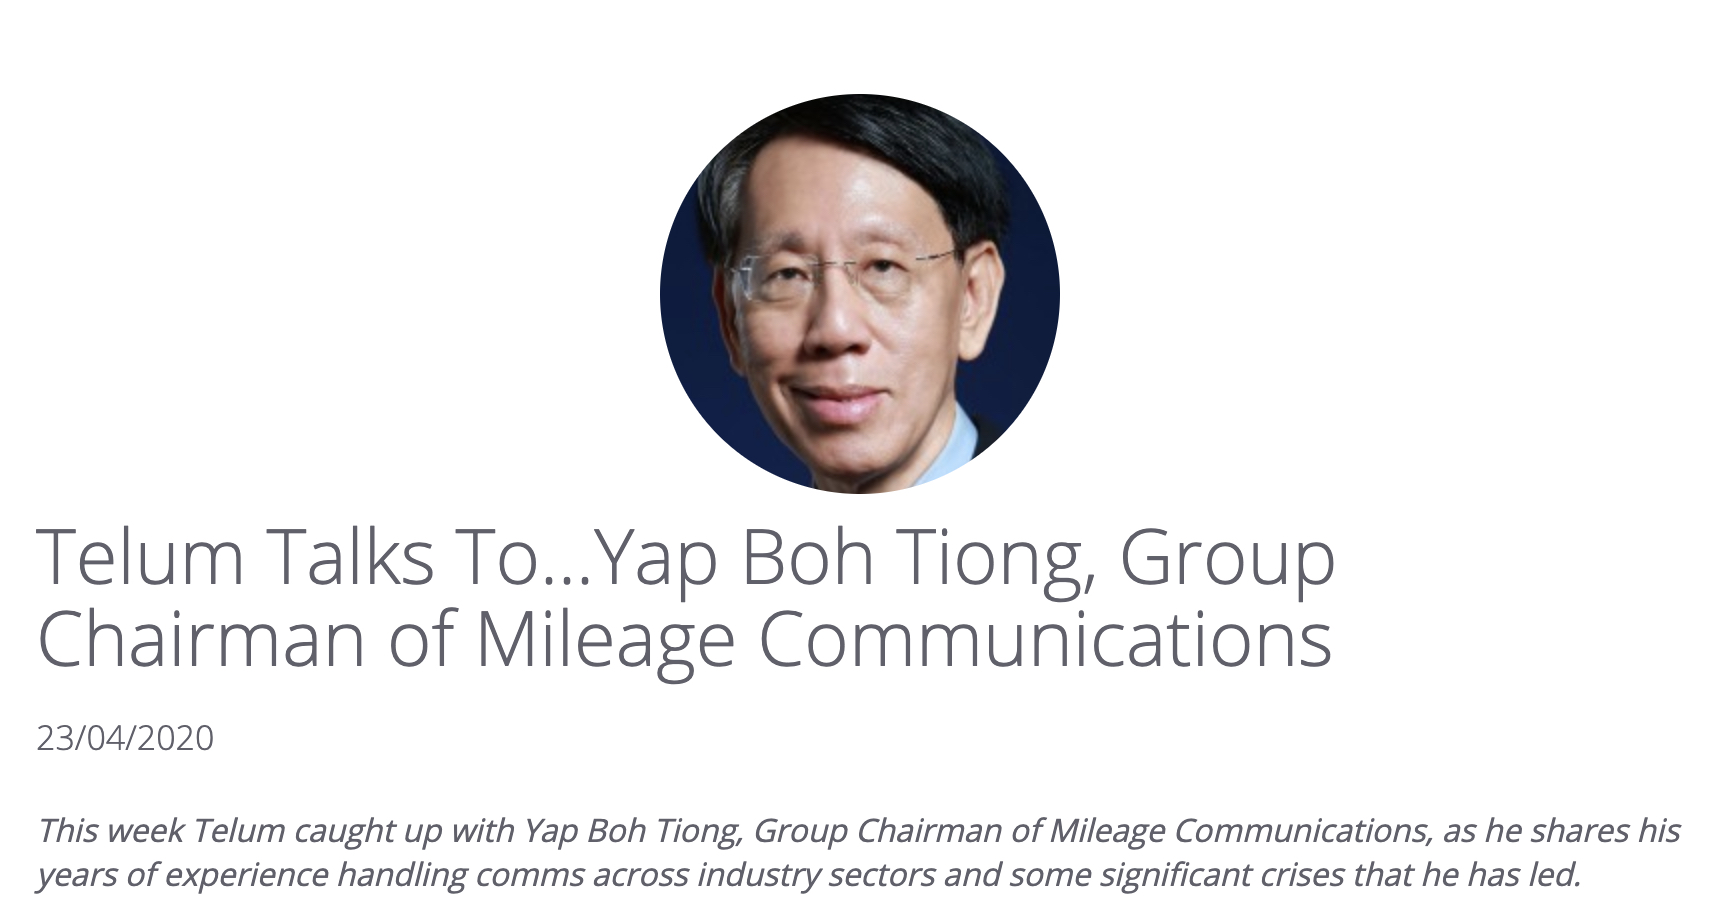 Telum Talks To Mileage Communications Group Chairman Mr. Yap Boh Tiong